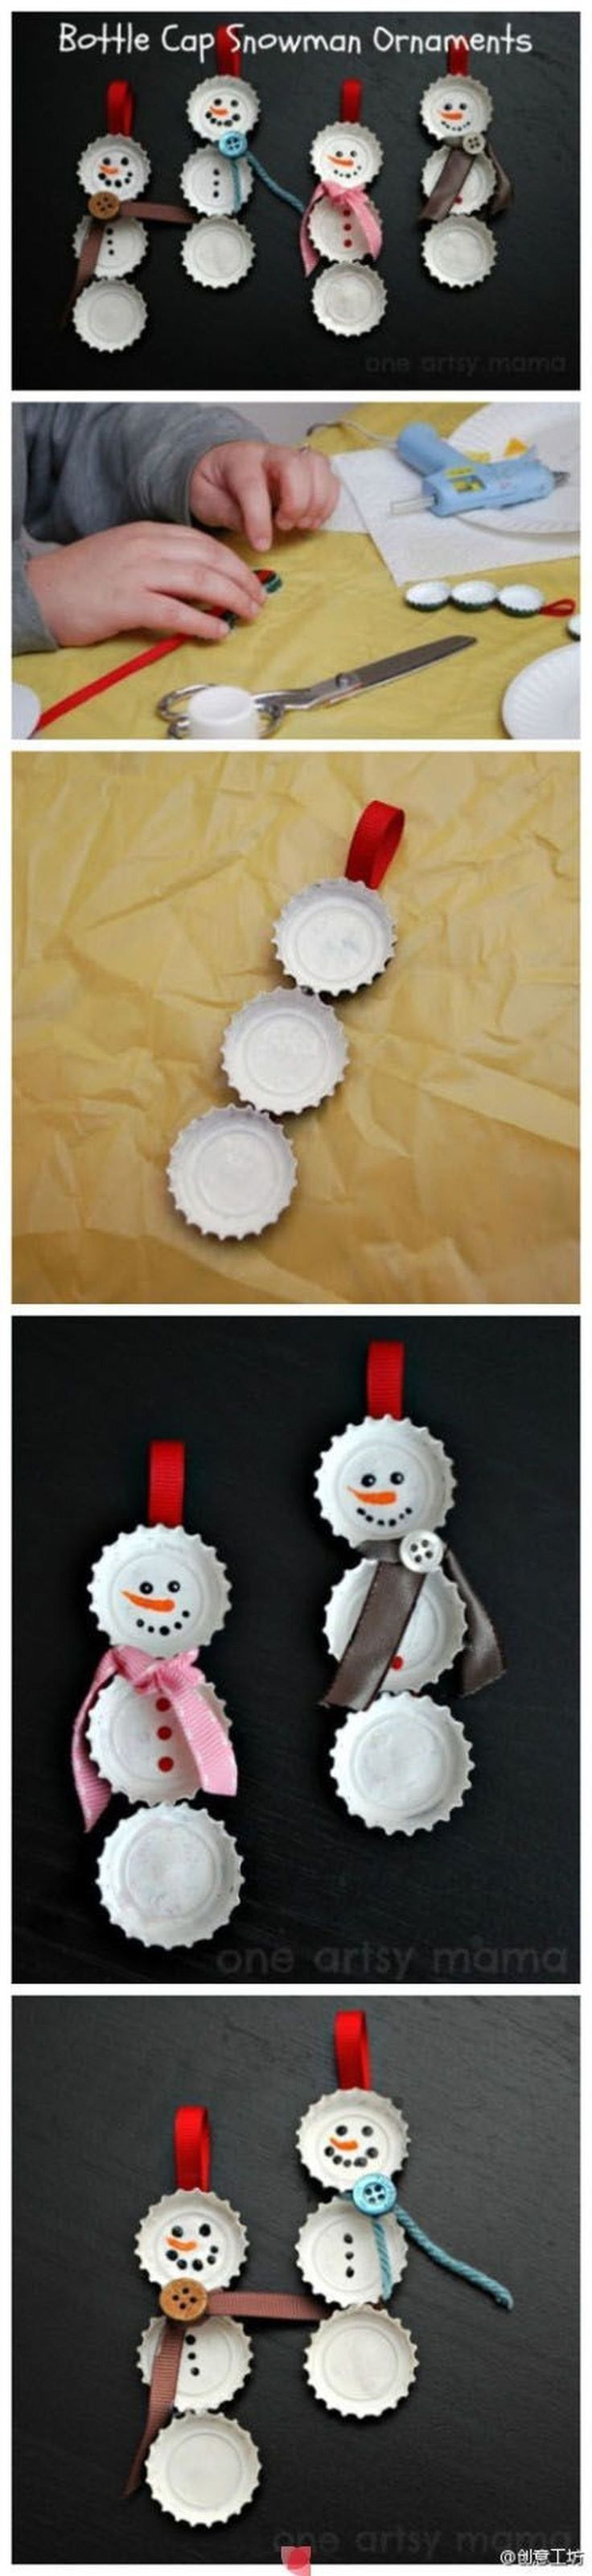 Let's create a new keepsake with these DIY ornament ideas. Prepare plastic old-fashioned light bulb ornaments, white glitter, mini bottle brush trees, red and white striped baker's twine and a hot glue gun to make a cute mini snow globe. Grab your photos, cut them into circles and apply to wood slices to make your favorite holiday memories last a lifetime with this personalized ornaments. Make a cute Christmas star ornaments with festive yarn and pretty cardstock. #WhiteGlitter